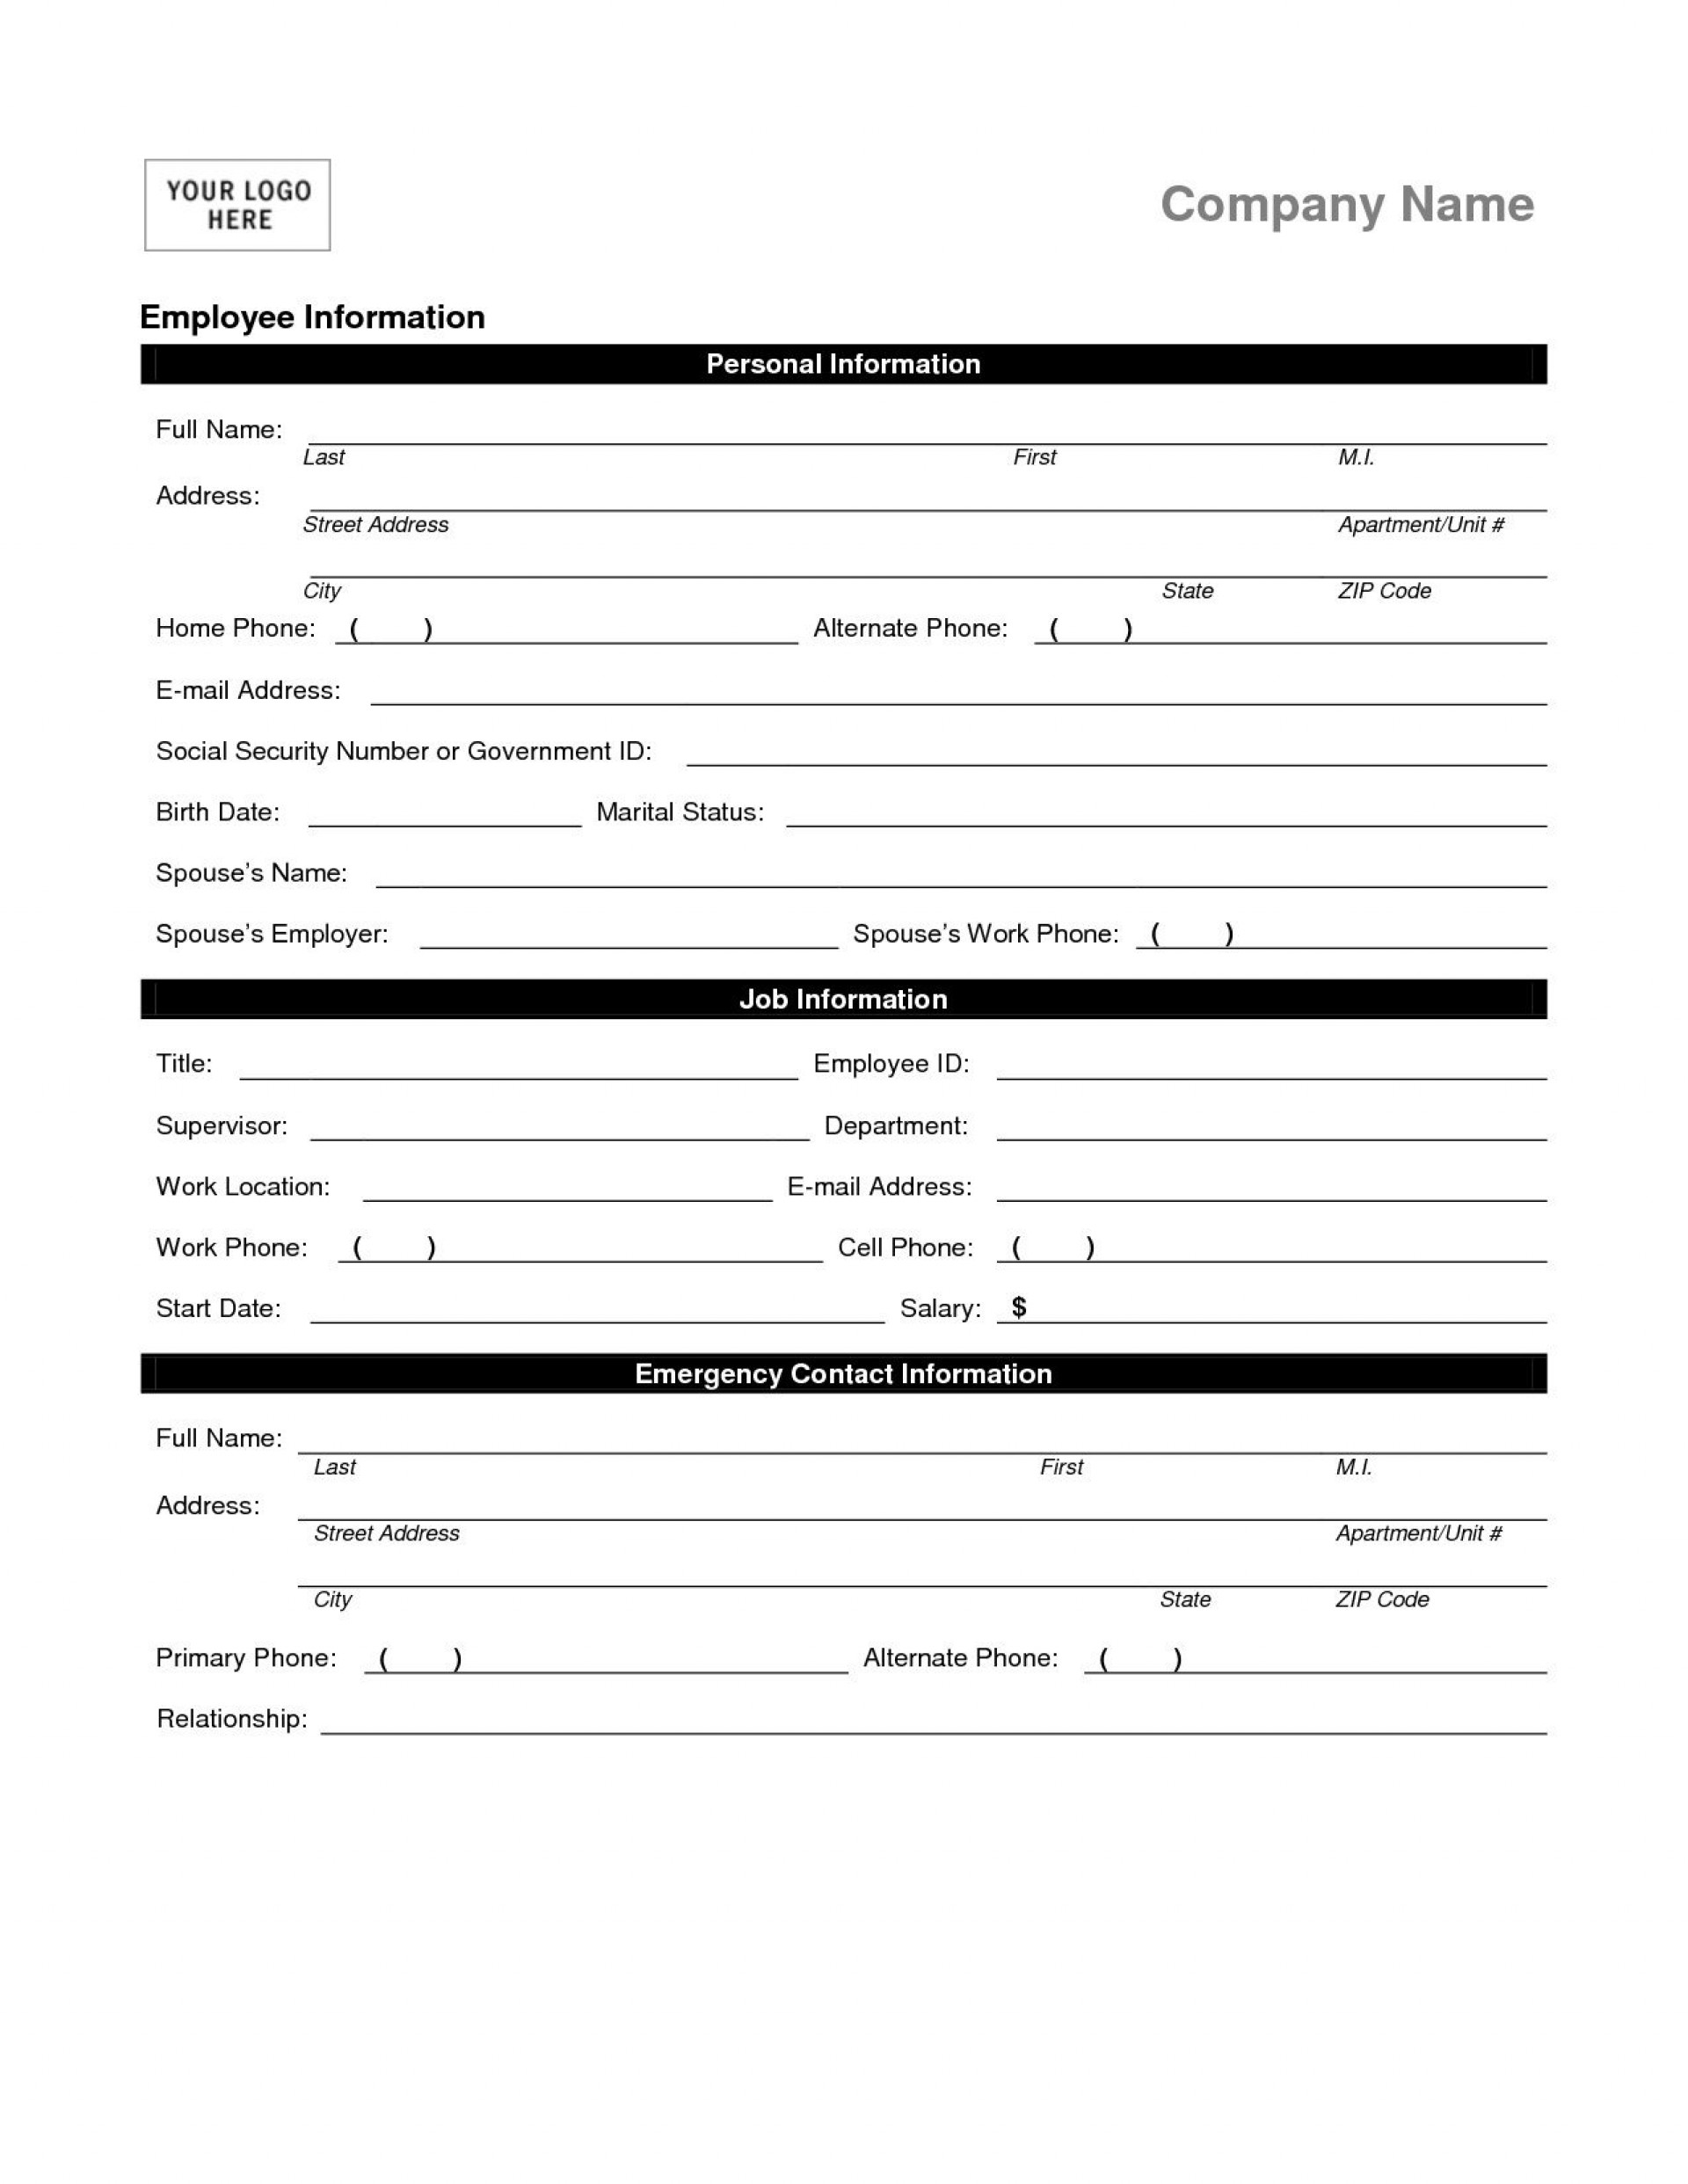 000 Staggering Employment Information Form Template Image  Employee Registration Free Download Application Malaysia Word1920